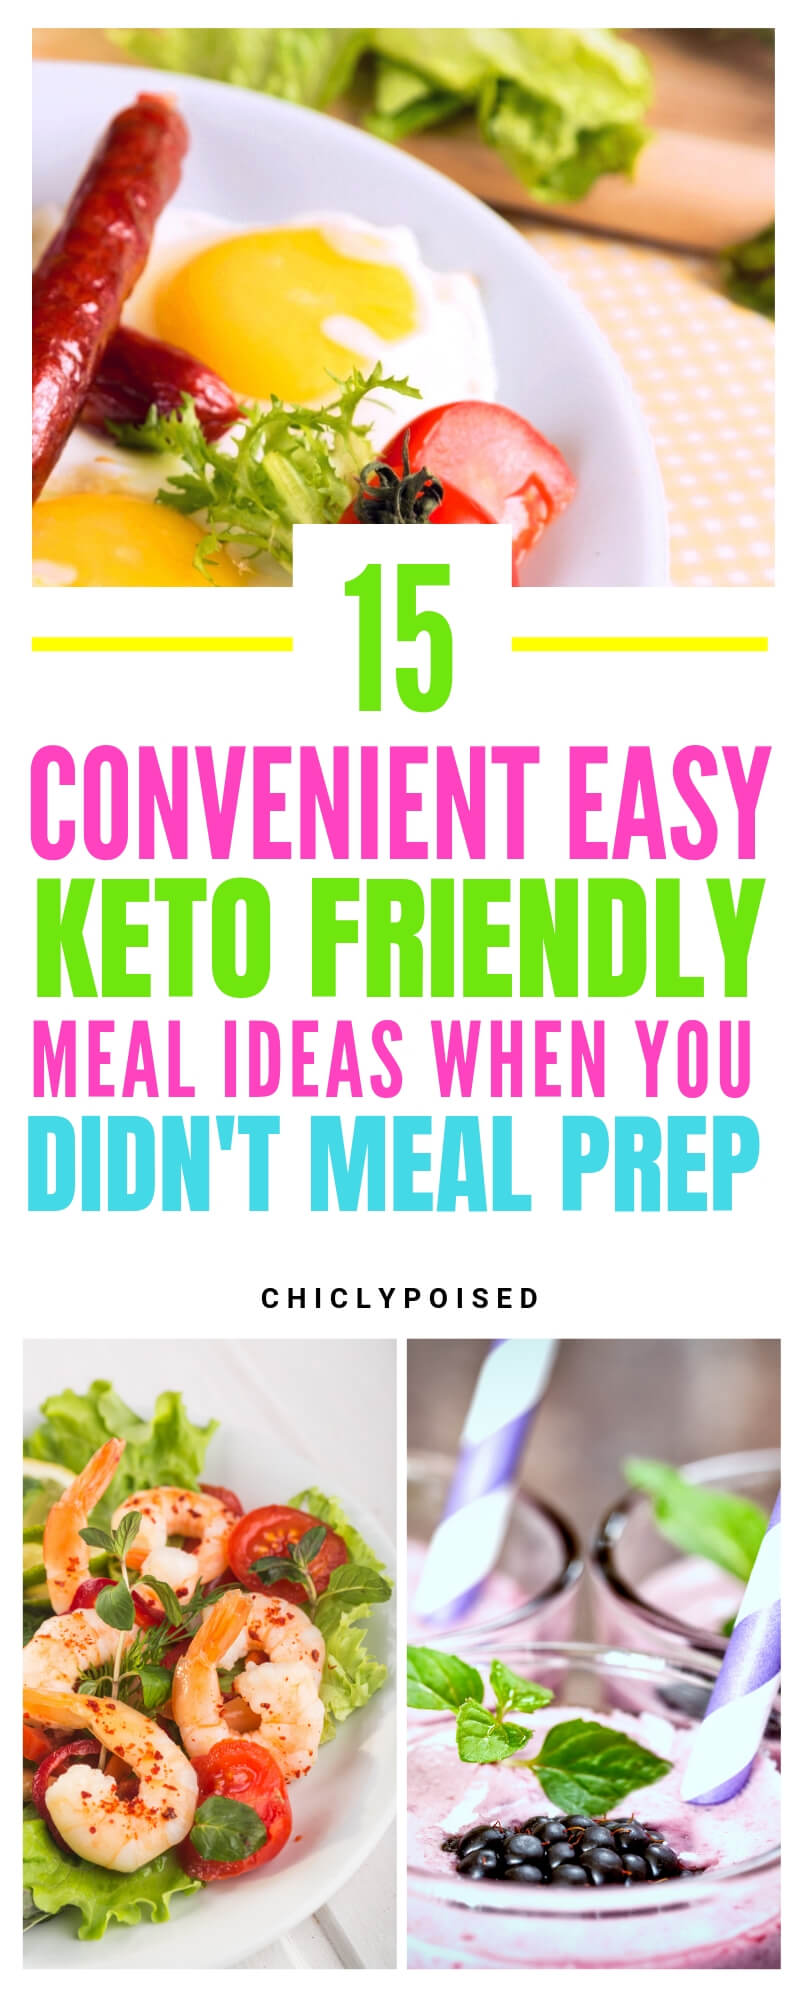 Convenient Easy Keto Friendly Meal Ideas-3